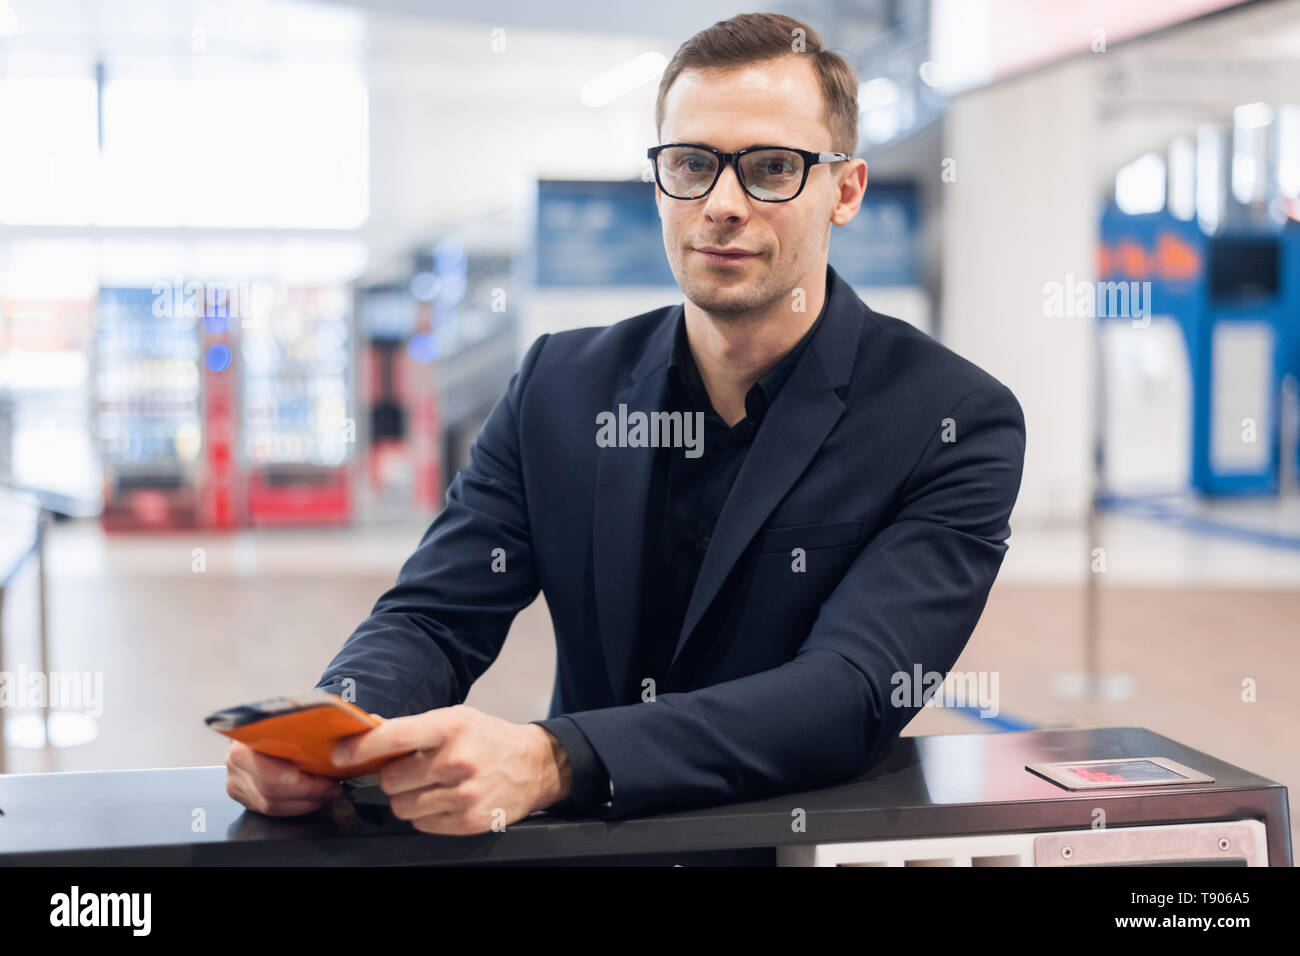 Midsection Of Male Passenger Showing Passport At Airport - Stock Image